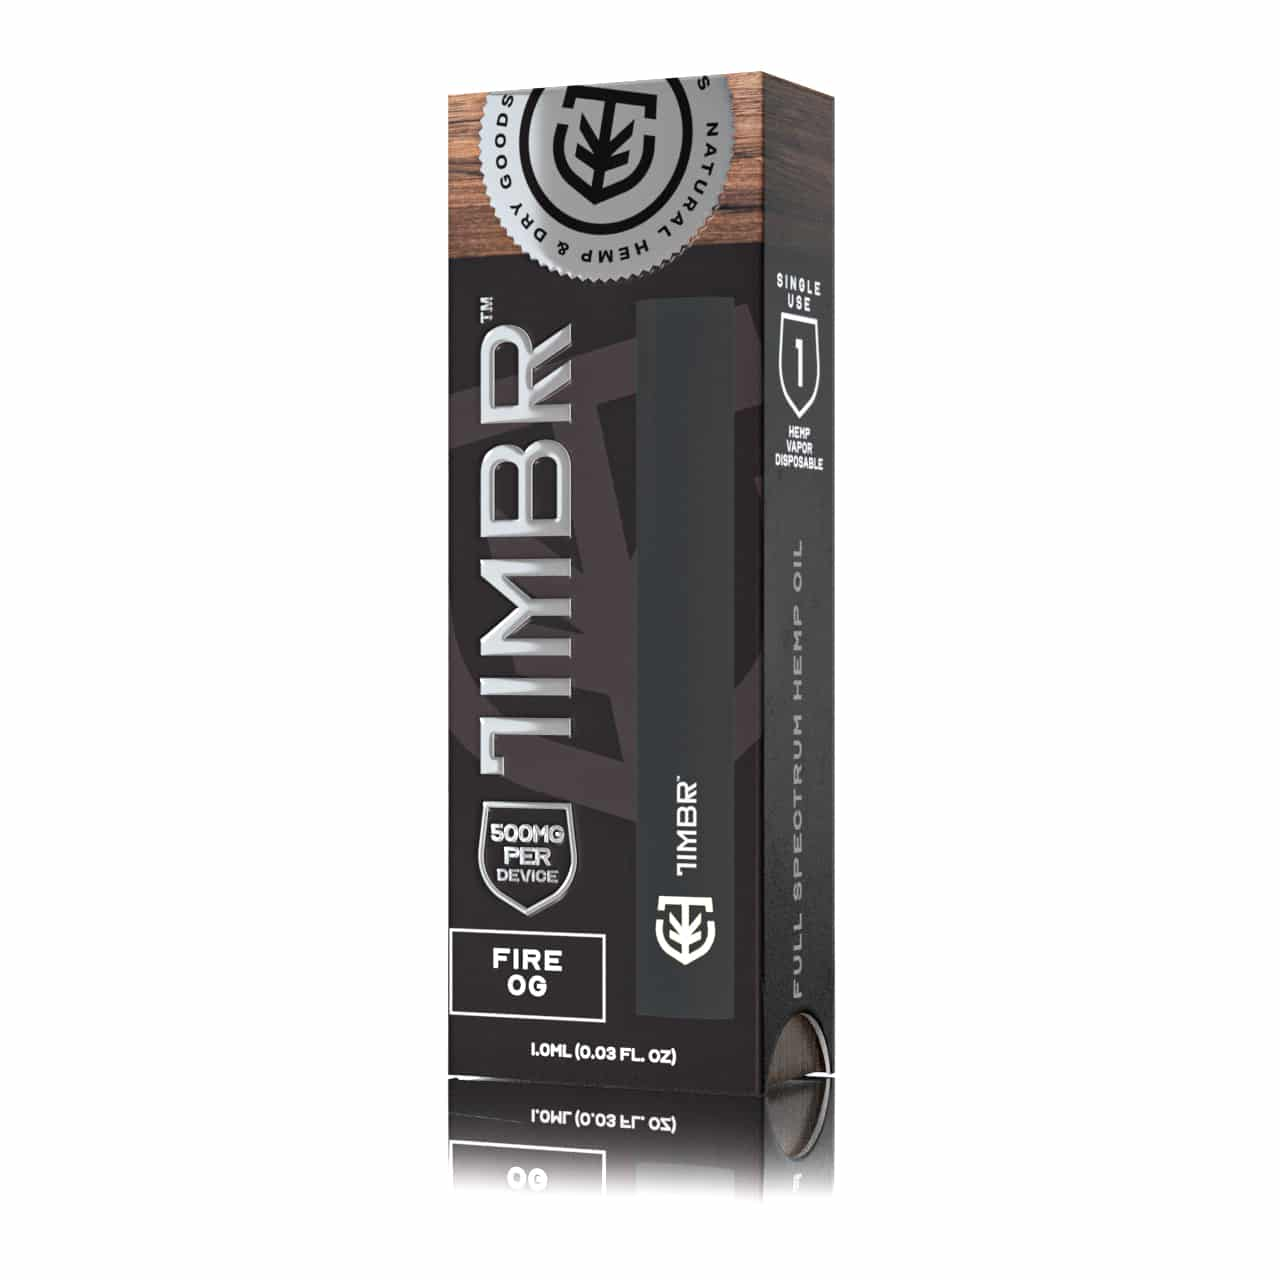 Timbr 500mg - Fire OG Strain - Hemp Disposable CBD Pen